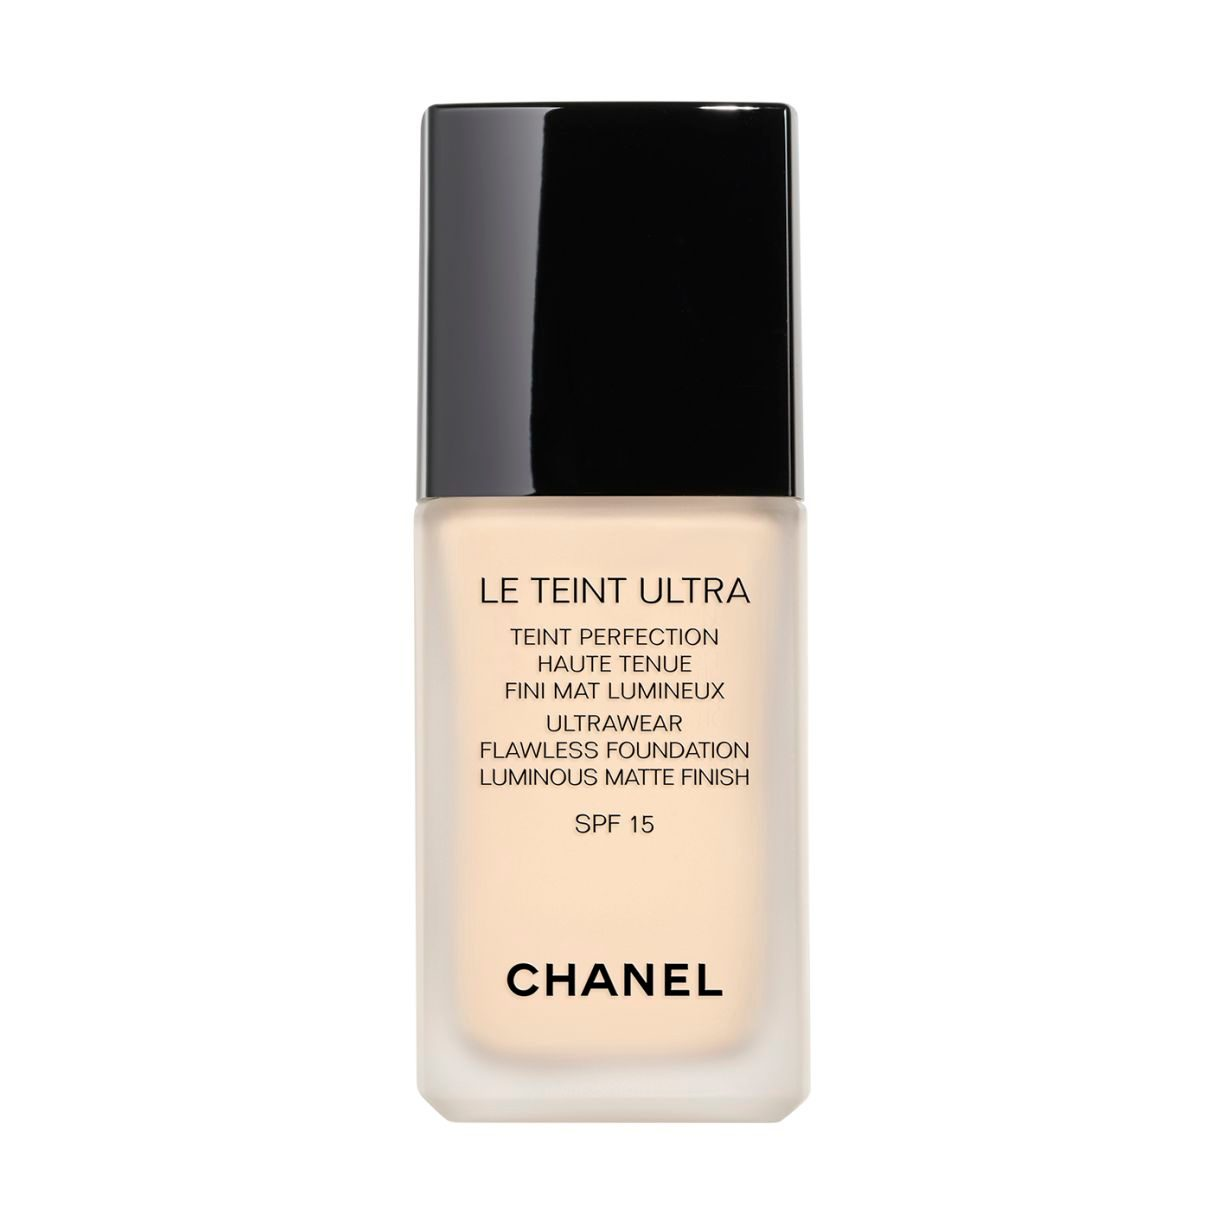 LE TEINT ULTRA ULTRAWEAR FLAWLESS FOUNDATION LUMINOUS MATTE FINISH SPF15 10 - BEIGE